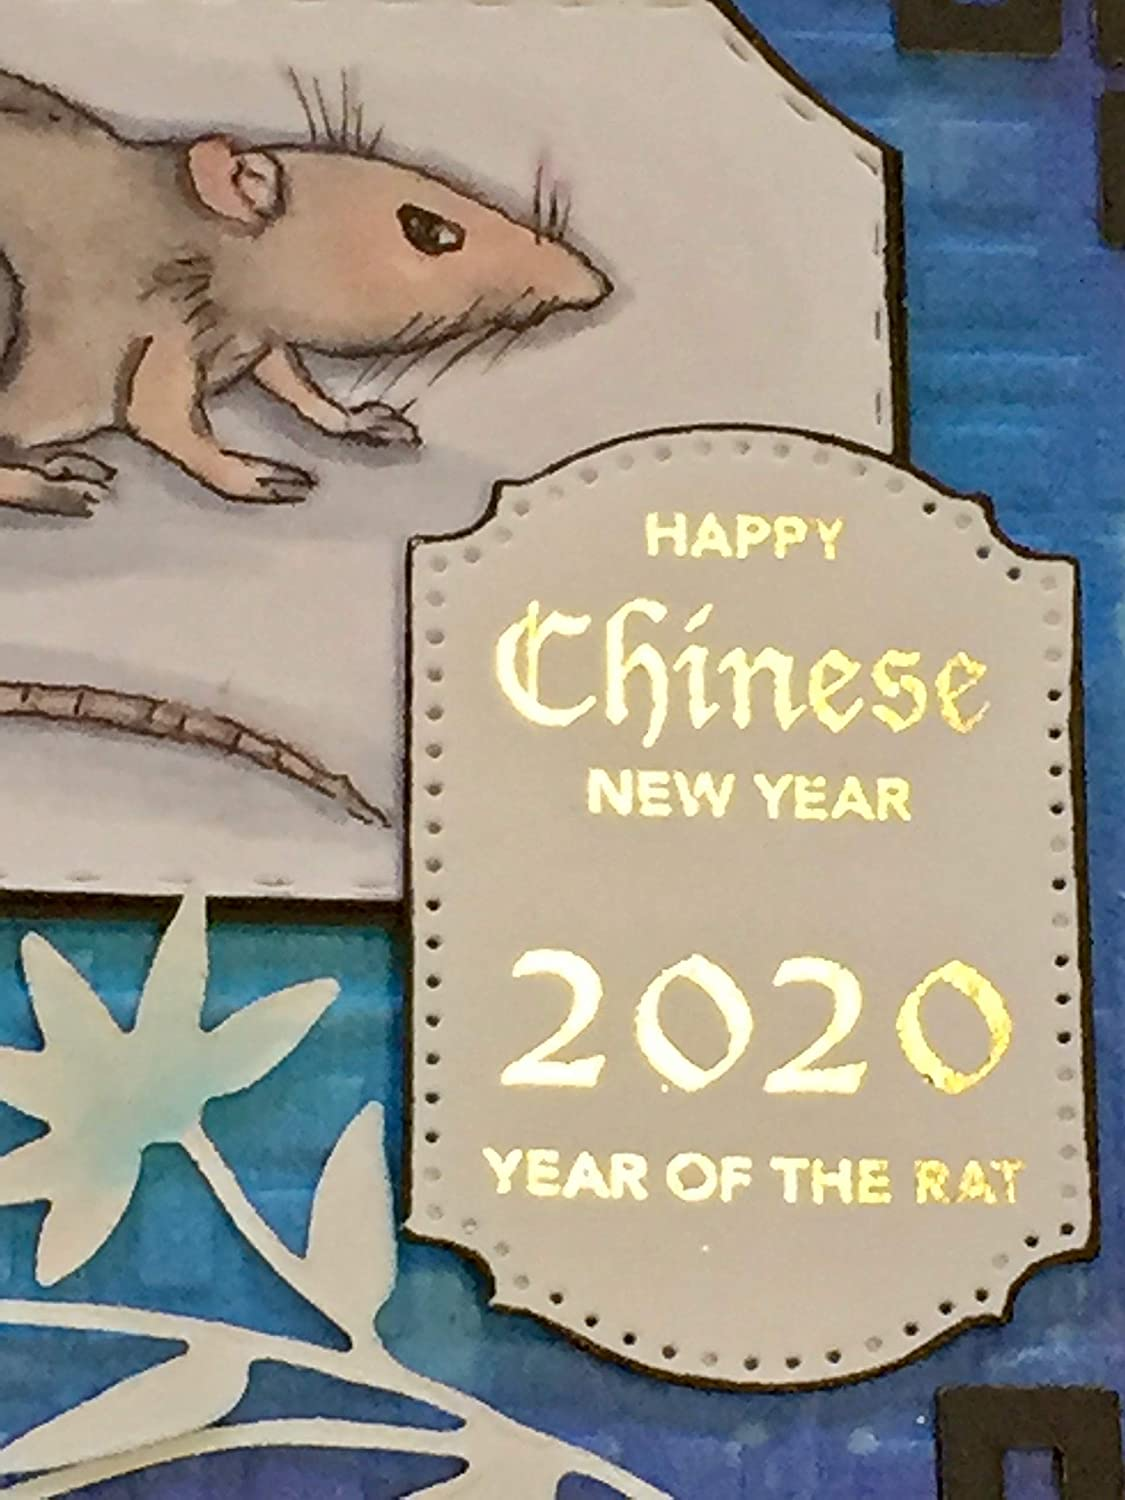 handmade Card by DEE Chinese New Year Year of the RAT 2020 ornate frame